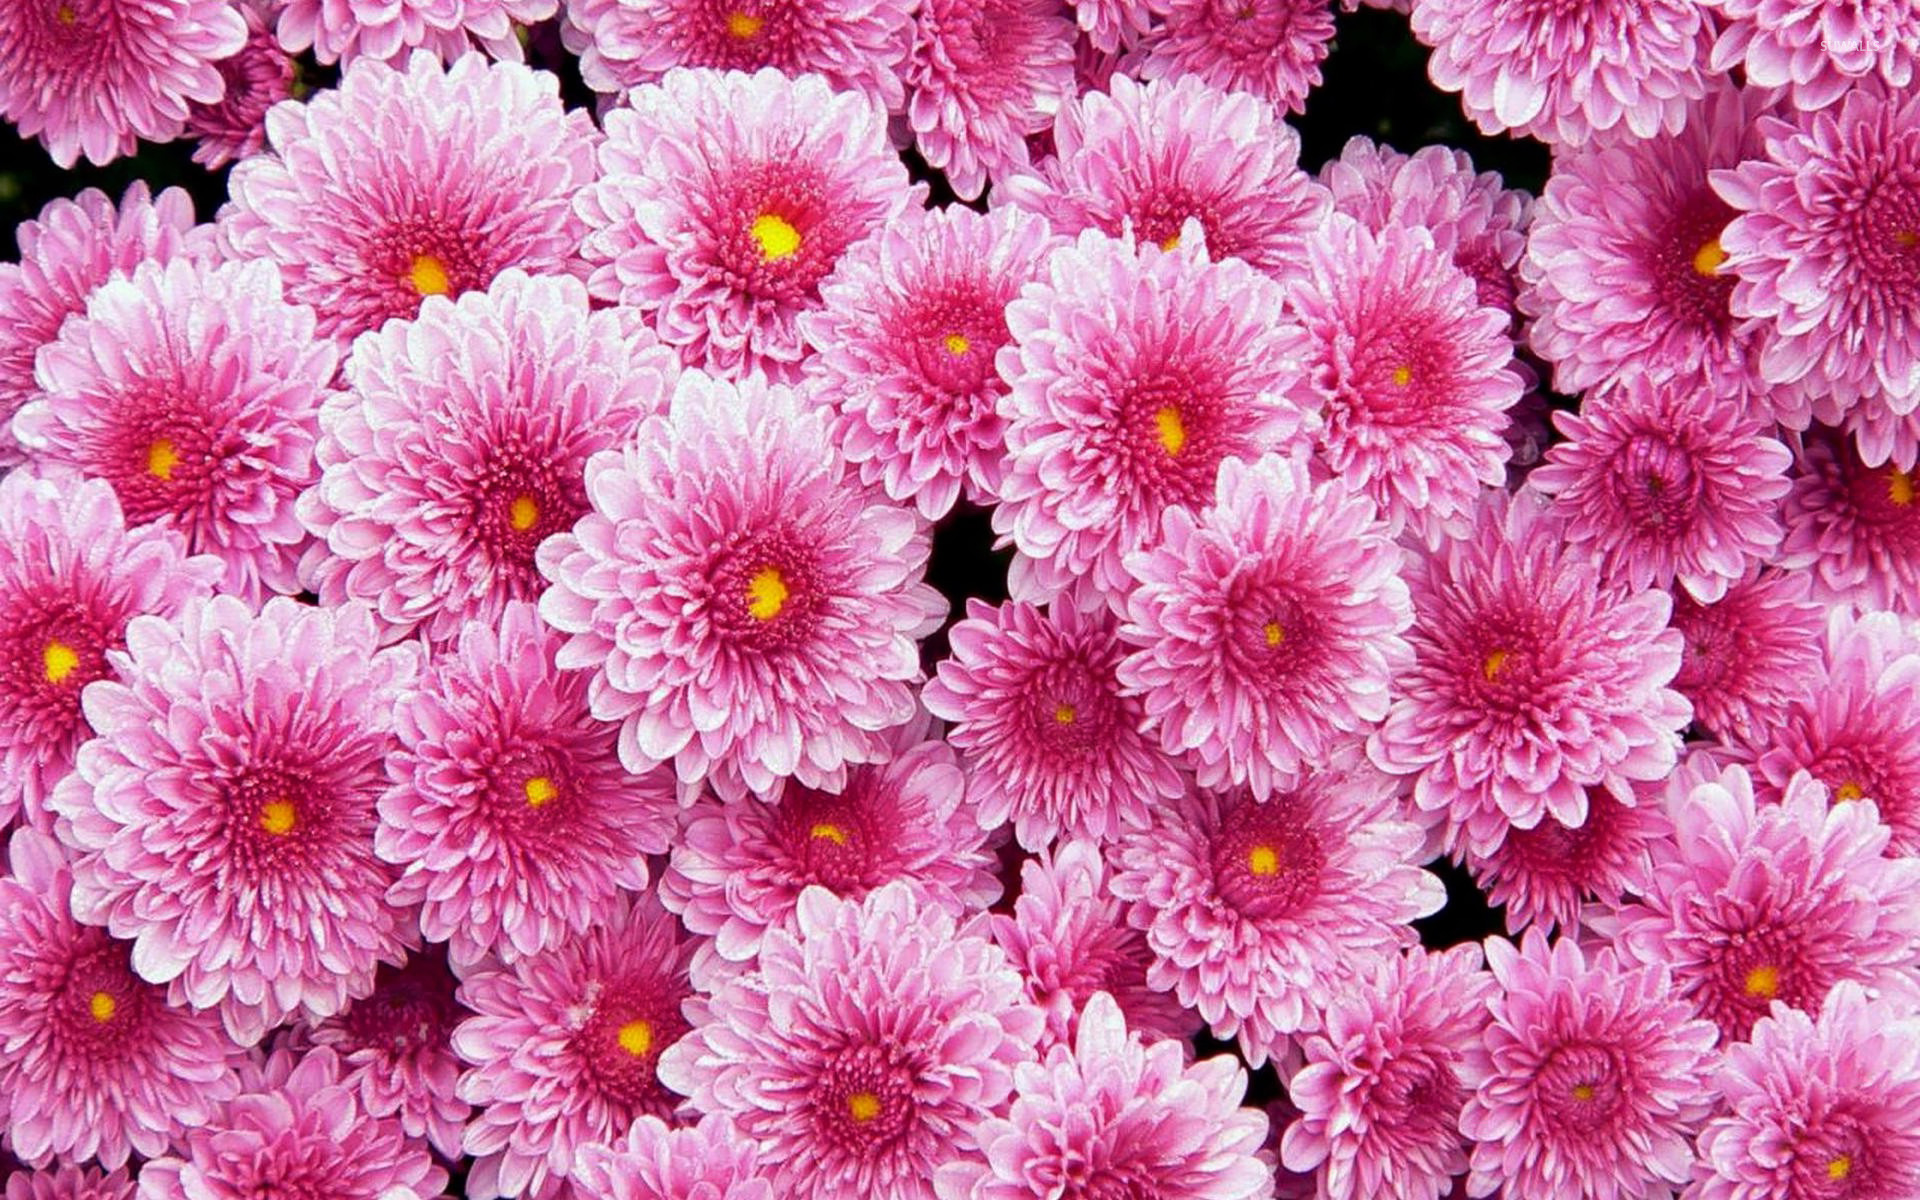 Dahlia Flower Pink Dahlias Wallpaper Flower Wallpapers 20441